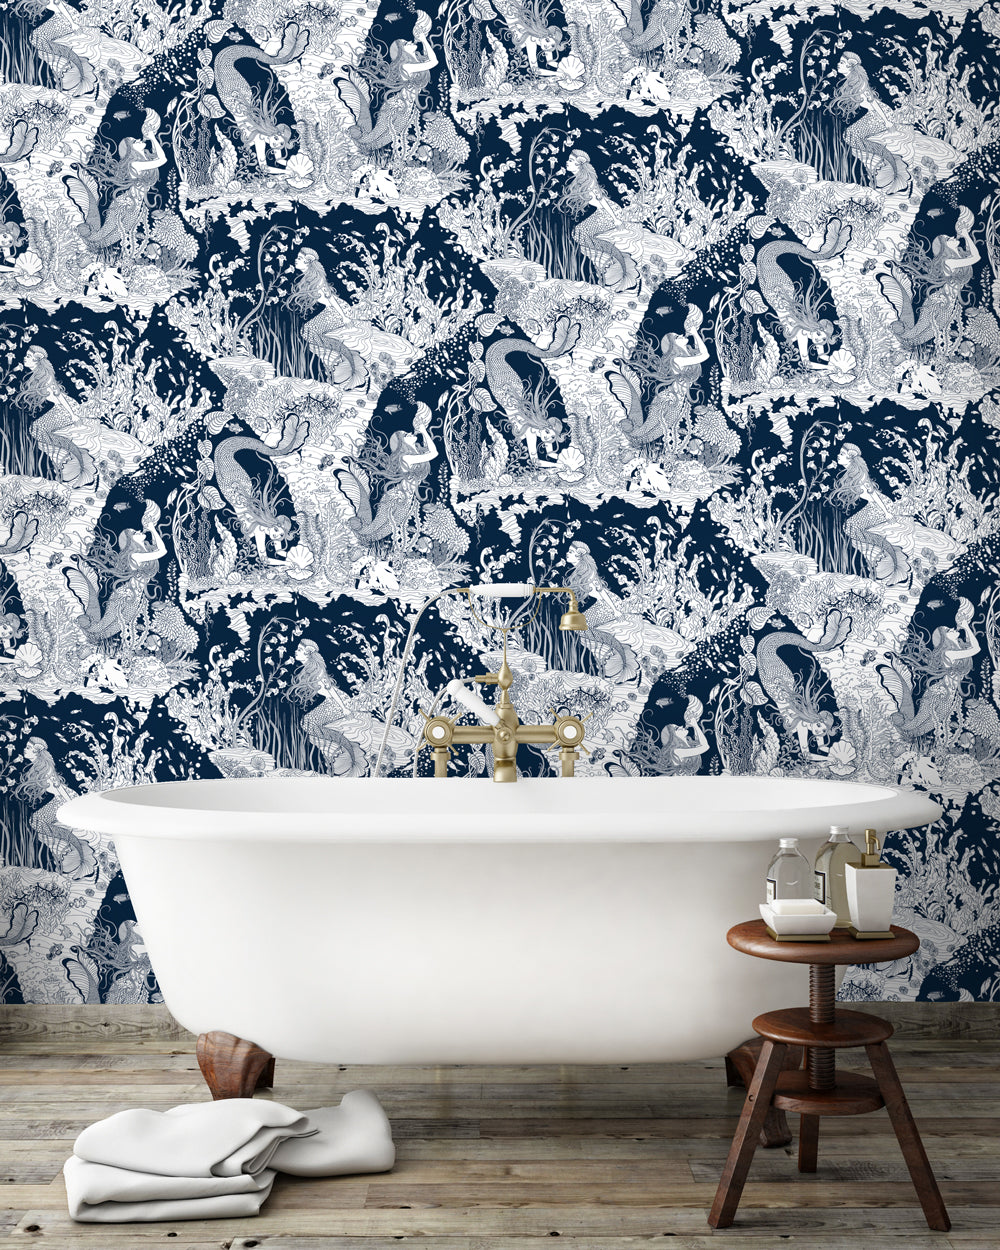 Mermaids - Wallpaper (Navy)